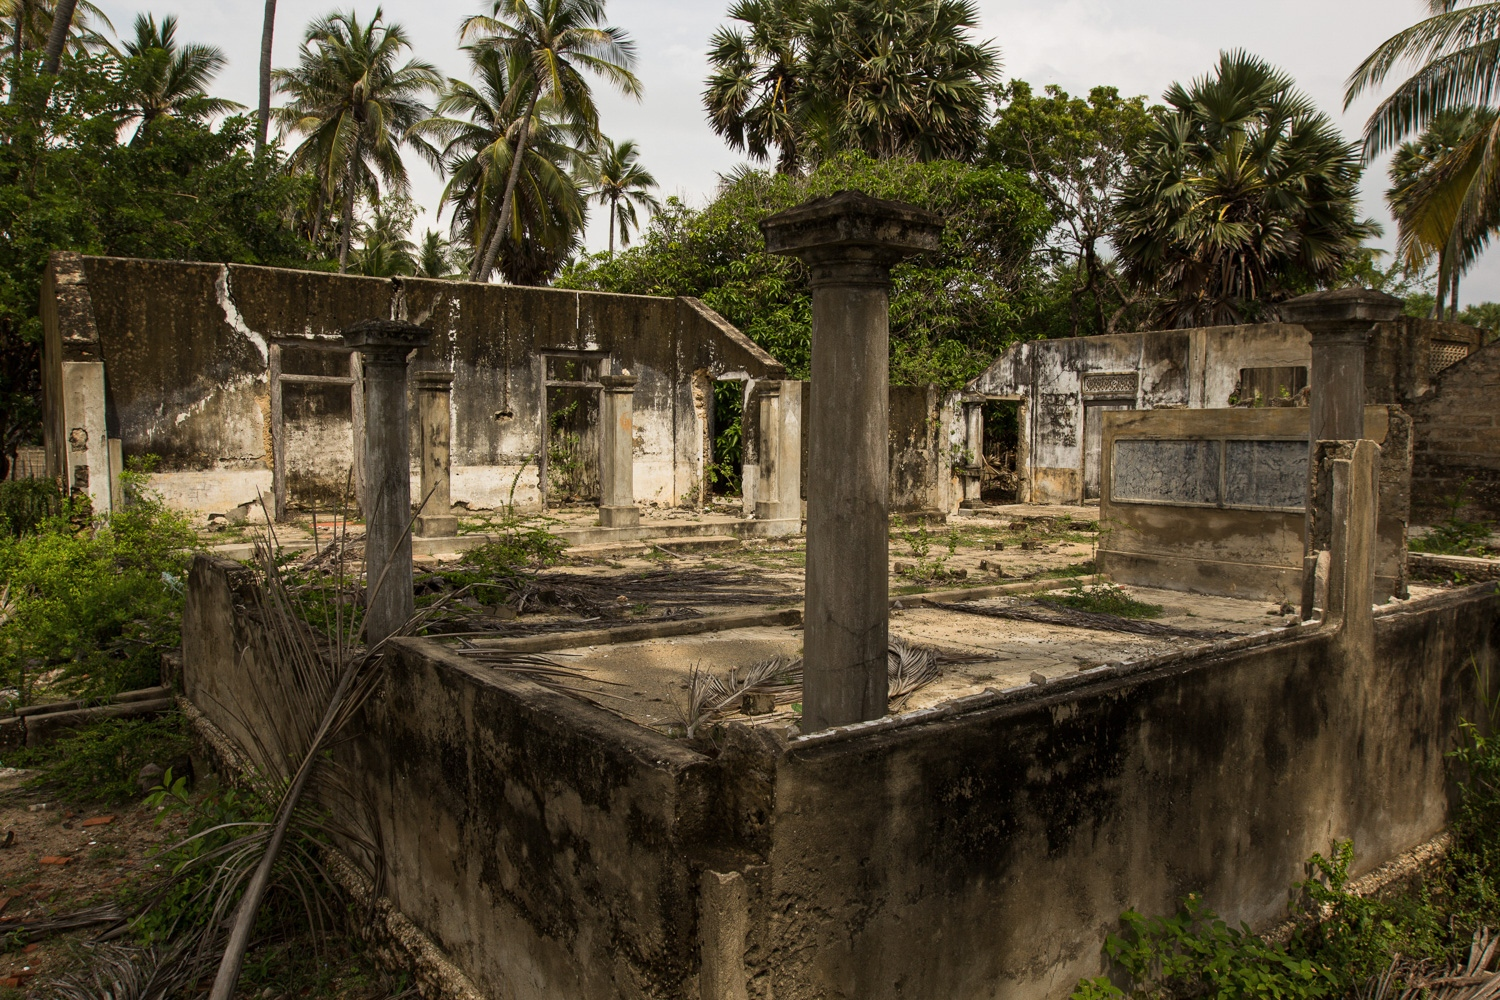 A forgotten home in Jaffna. During the 1980s, Jaffna became the frontline of the civil war. Many of the houses have not been touched in the decades since. (November, 2015)